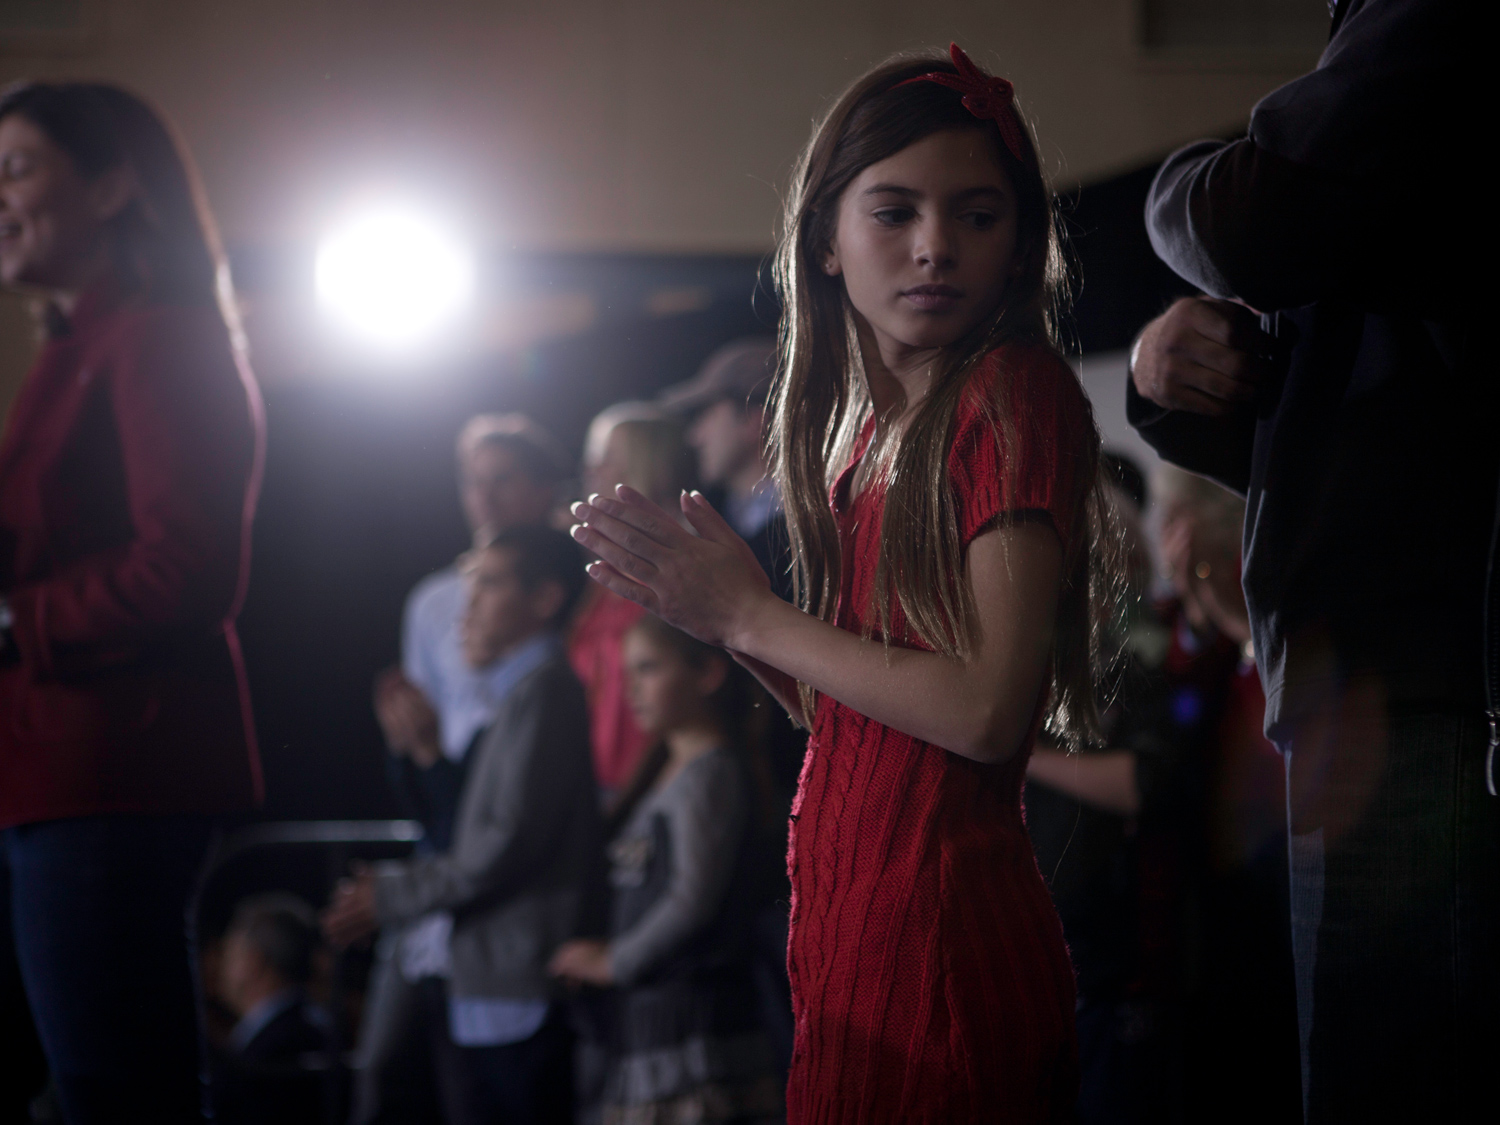 January 8, 2012. Young members of Mitt Romney's family on stage at a campaign rally in Exeter, N.H.